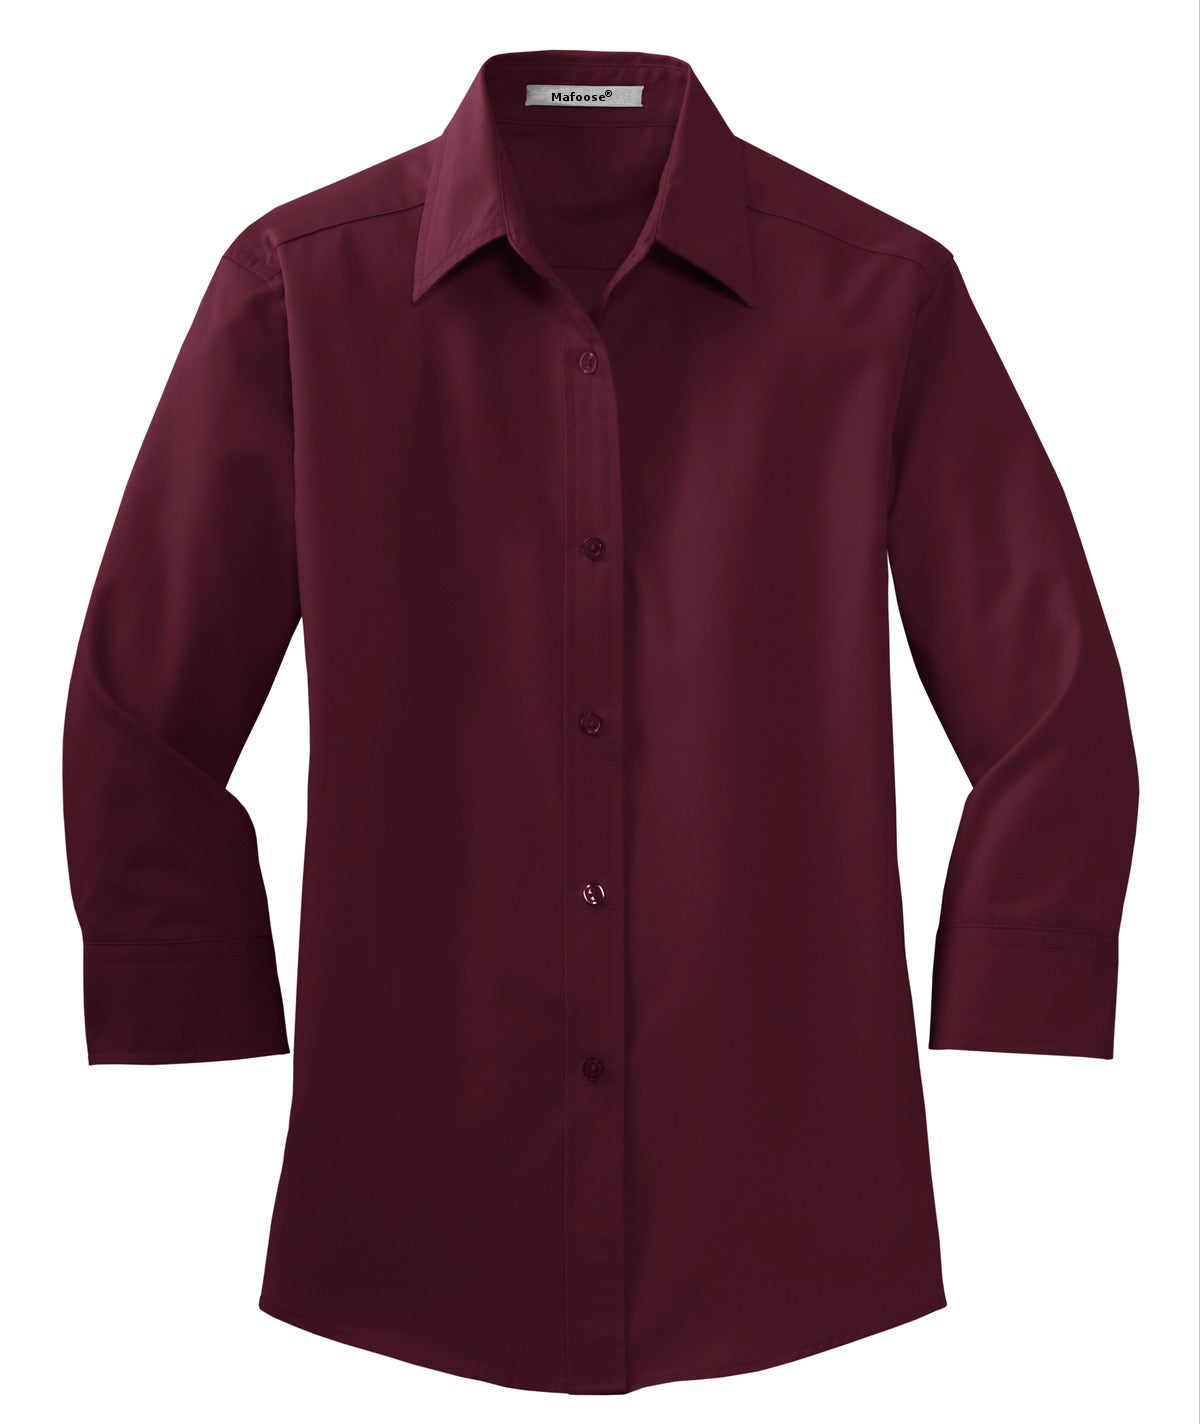 Mafoose Women's 3/4-Sleeve Traditional Easy Care Shirt Burgundy-Front